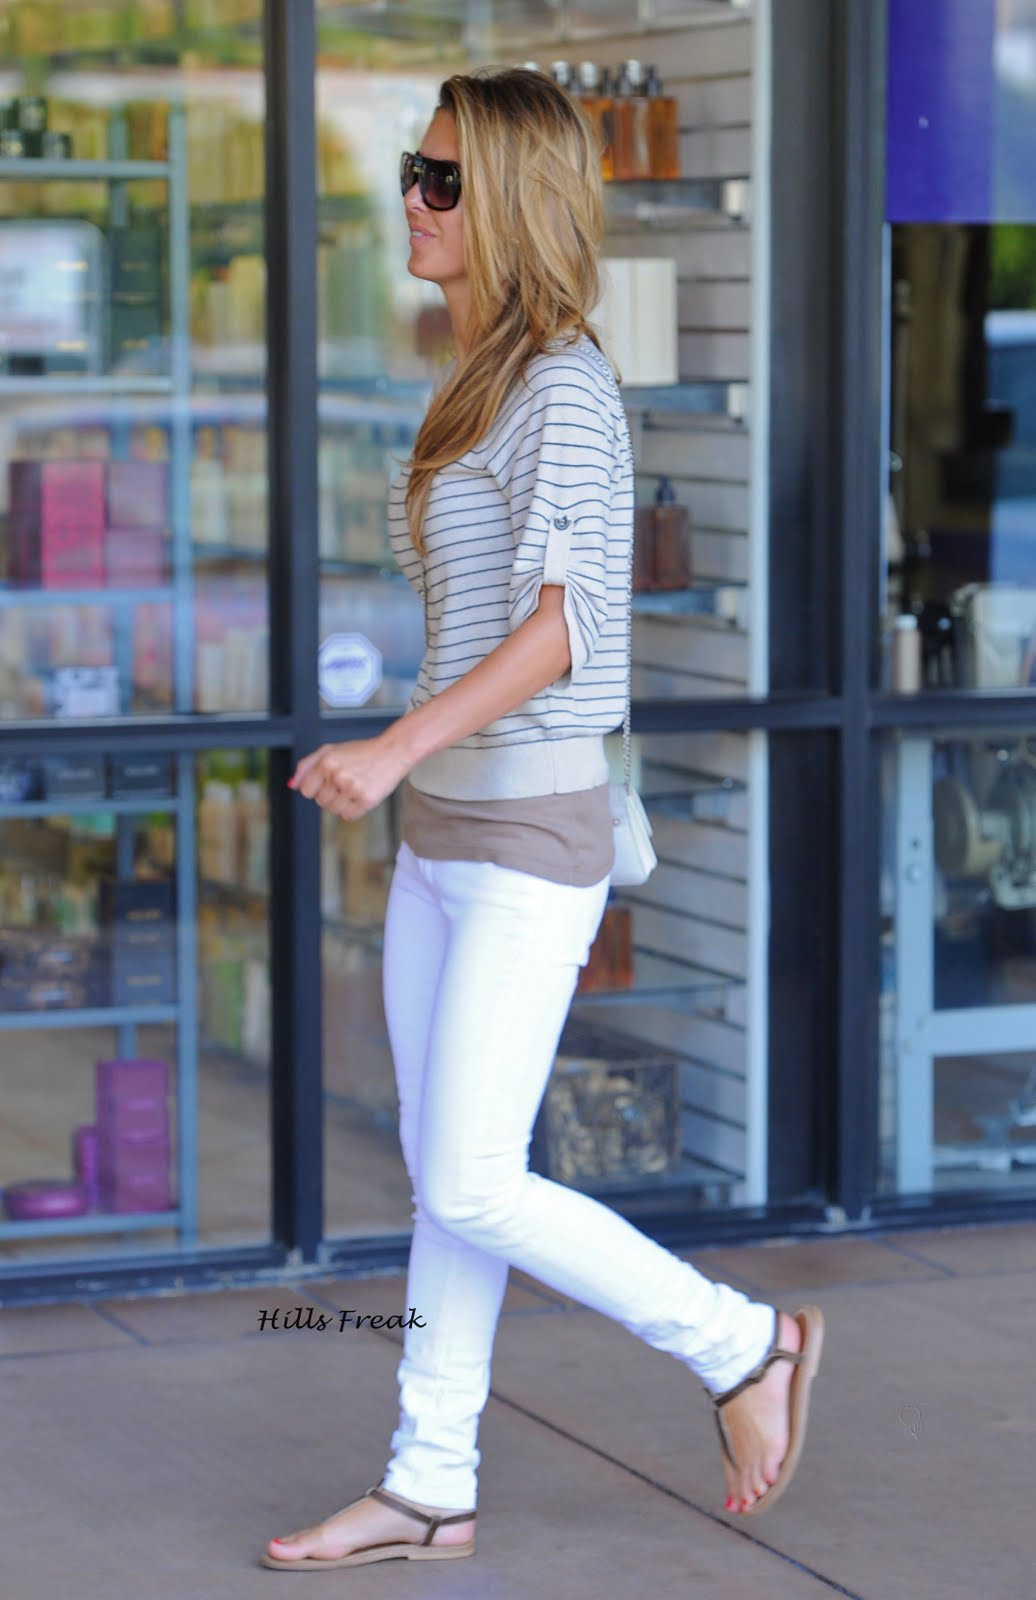 Hills Freak: Audrina Partidge: Out & About in Studio City